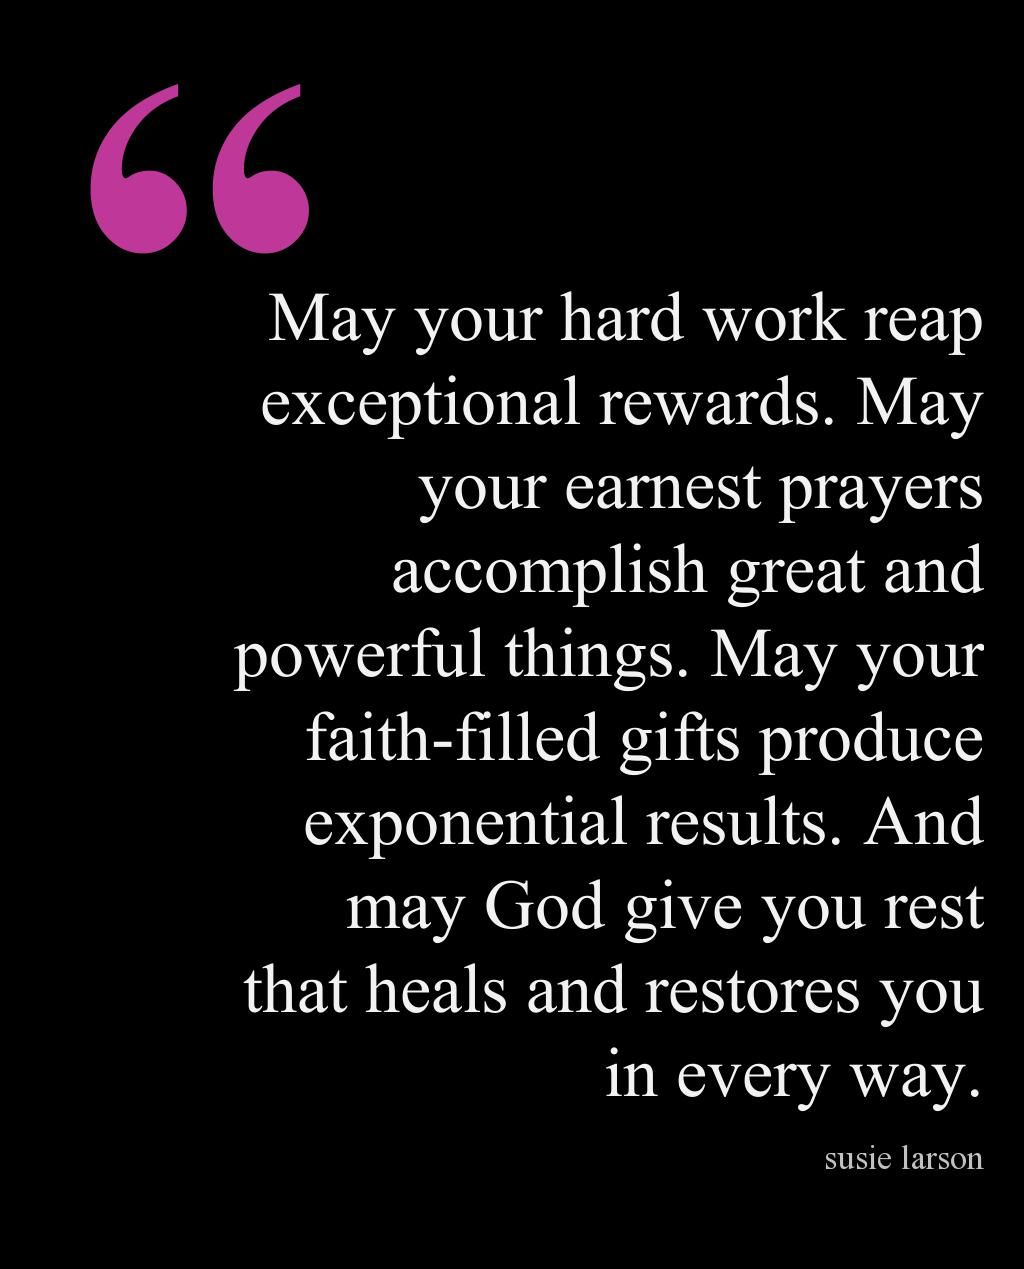 End Of Day Blessing May Your Hard Work Reap Exceptional Rewards